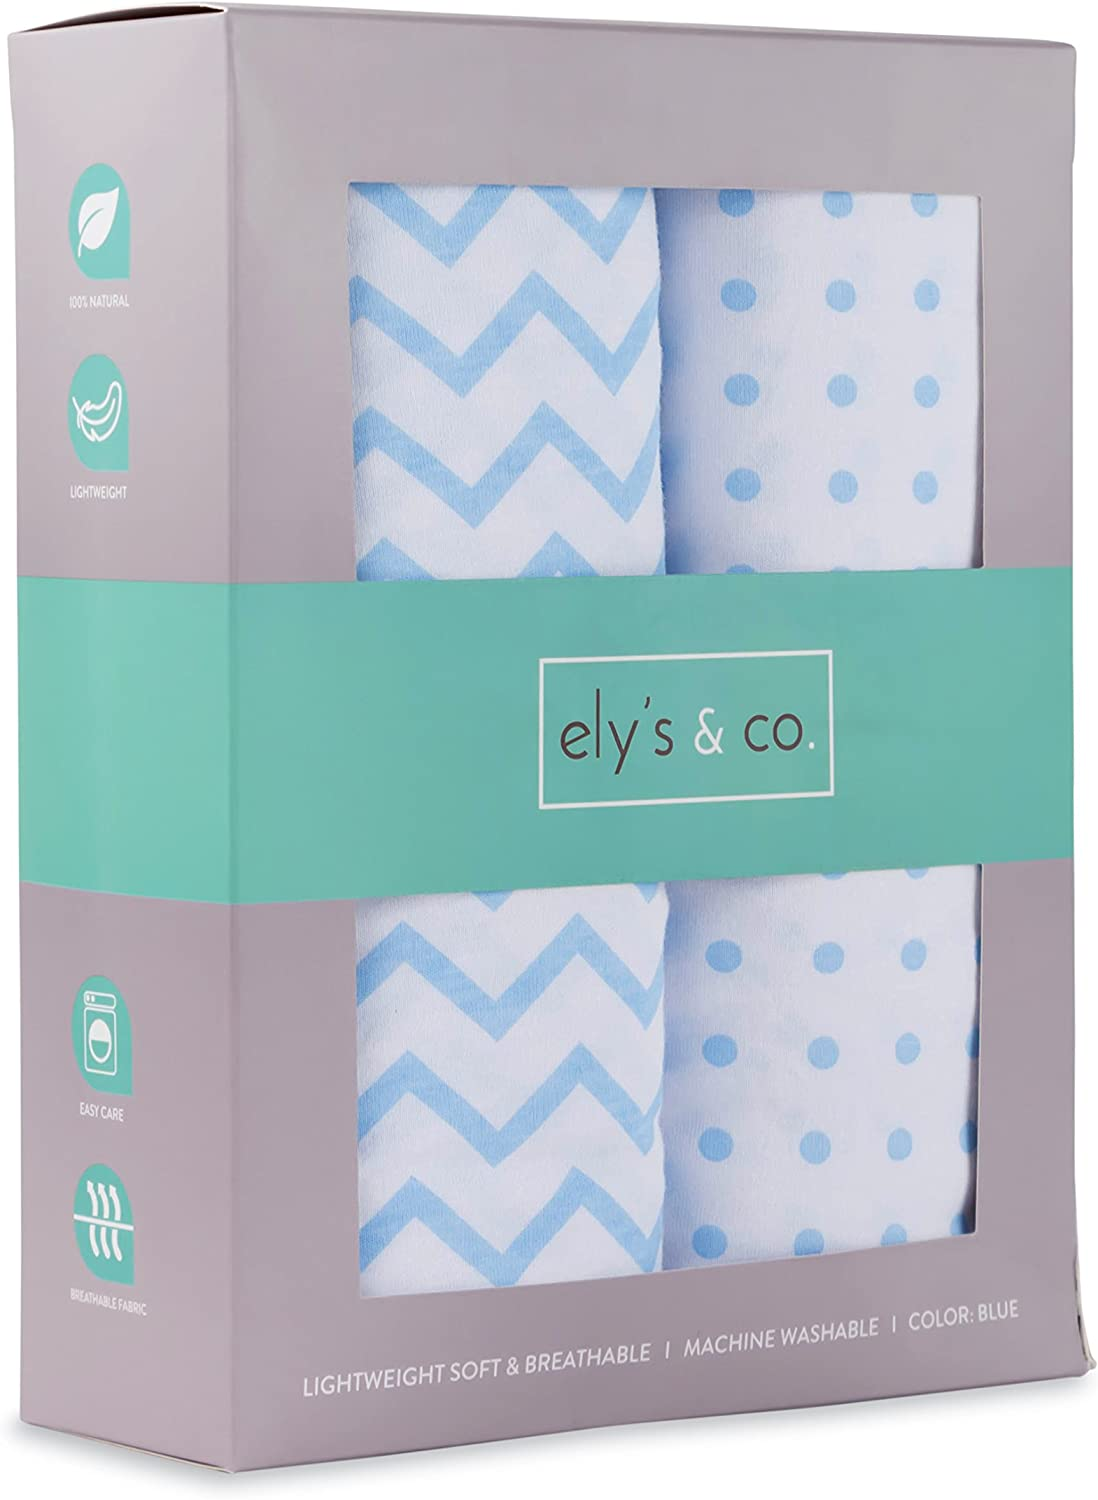 Ely's & Co. Fitted Crib Sheet Set | Toddler Sheet Set 2 Pack 100% Jersey Cotton for Baby Boy Blue Chevron and Polka Dots